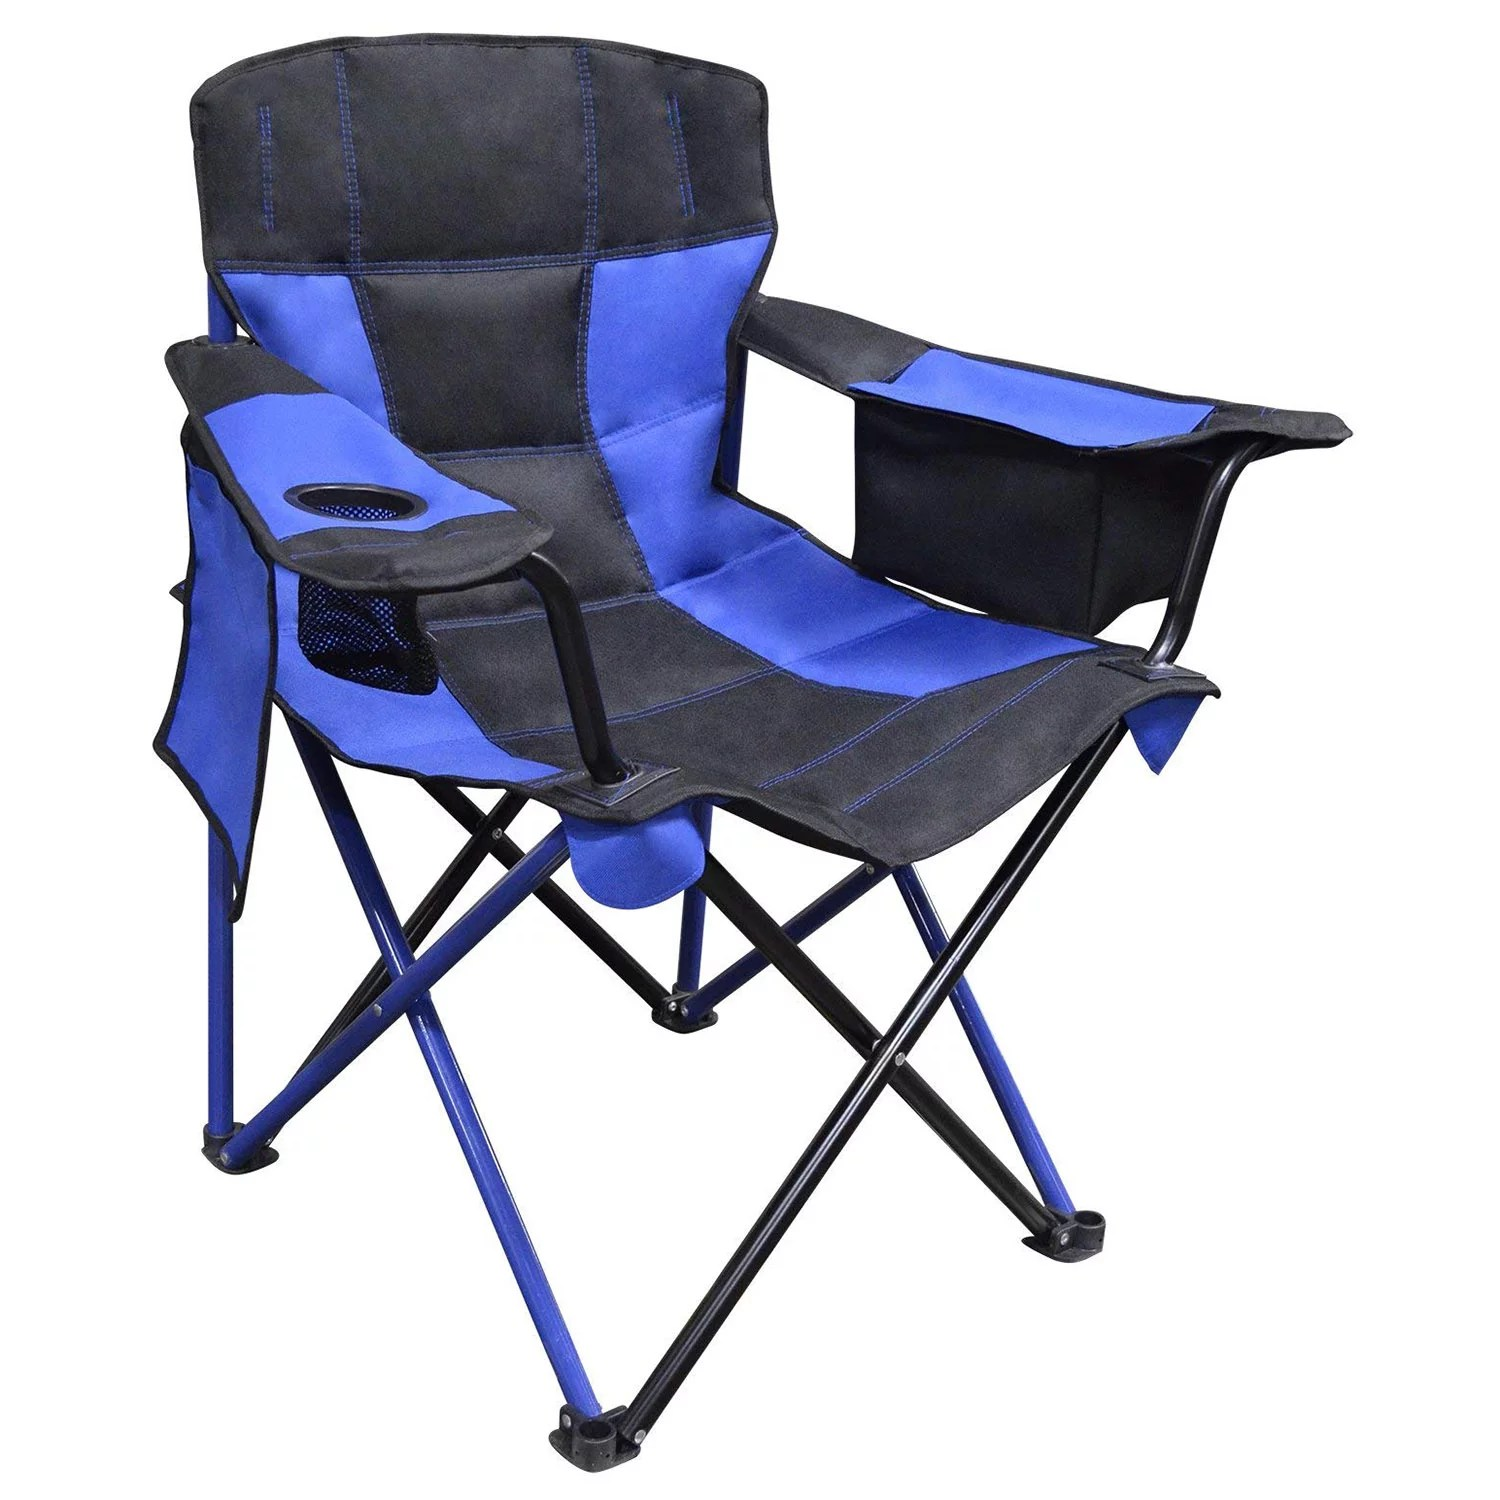 Camping Chair With Canopy Caravan Canopy Elite Quad Outdoor Camping Chair With Built In Cooler True Blue